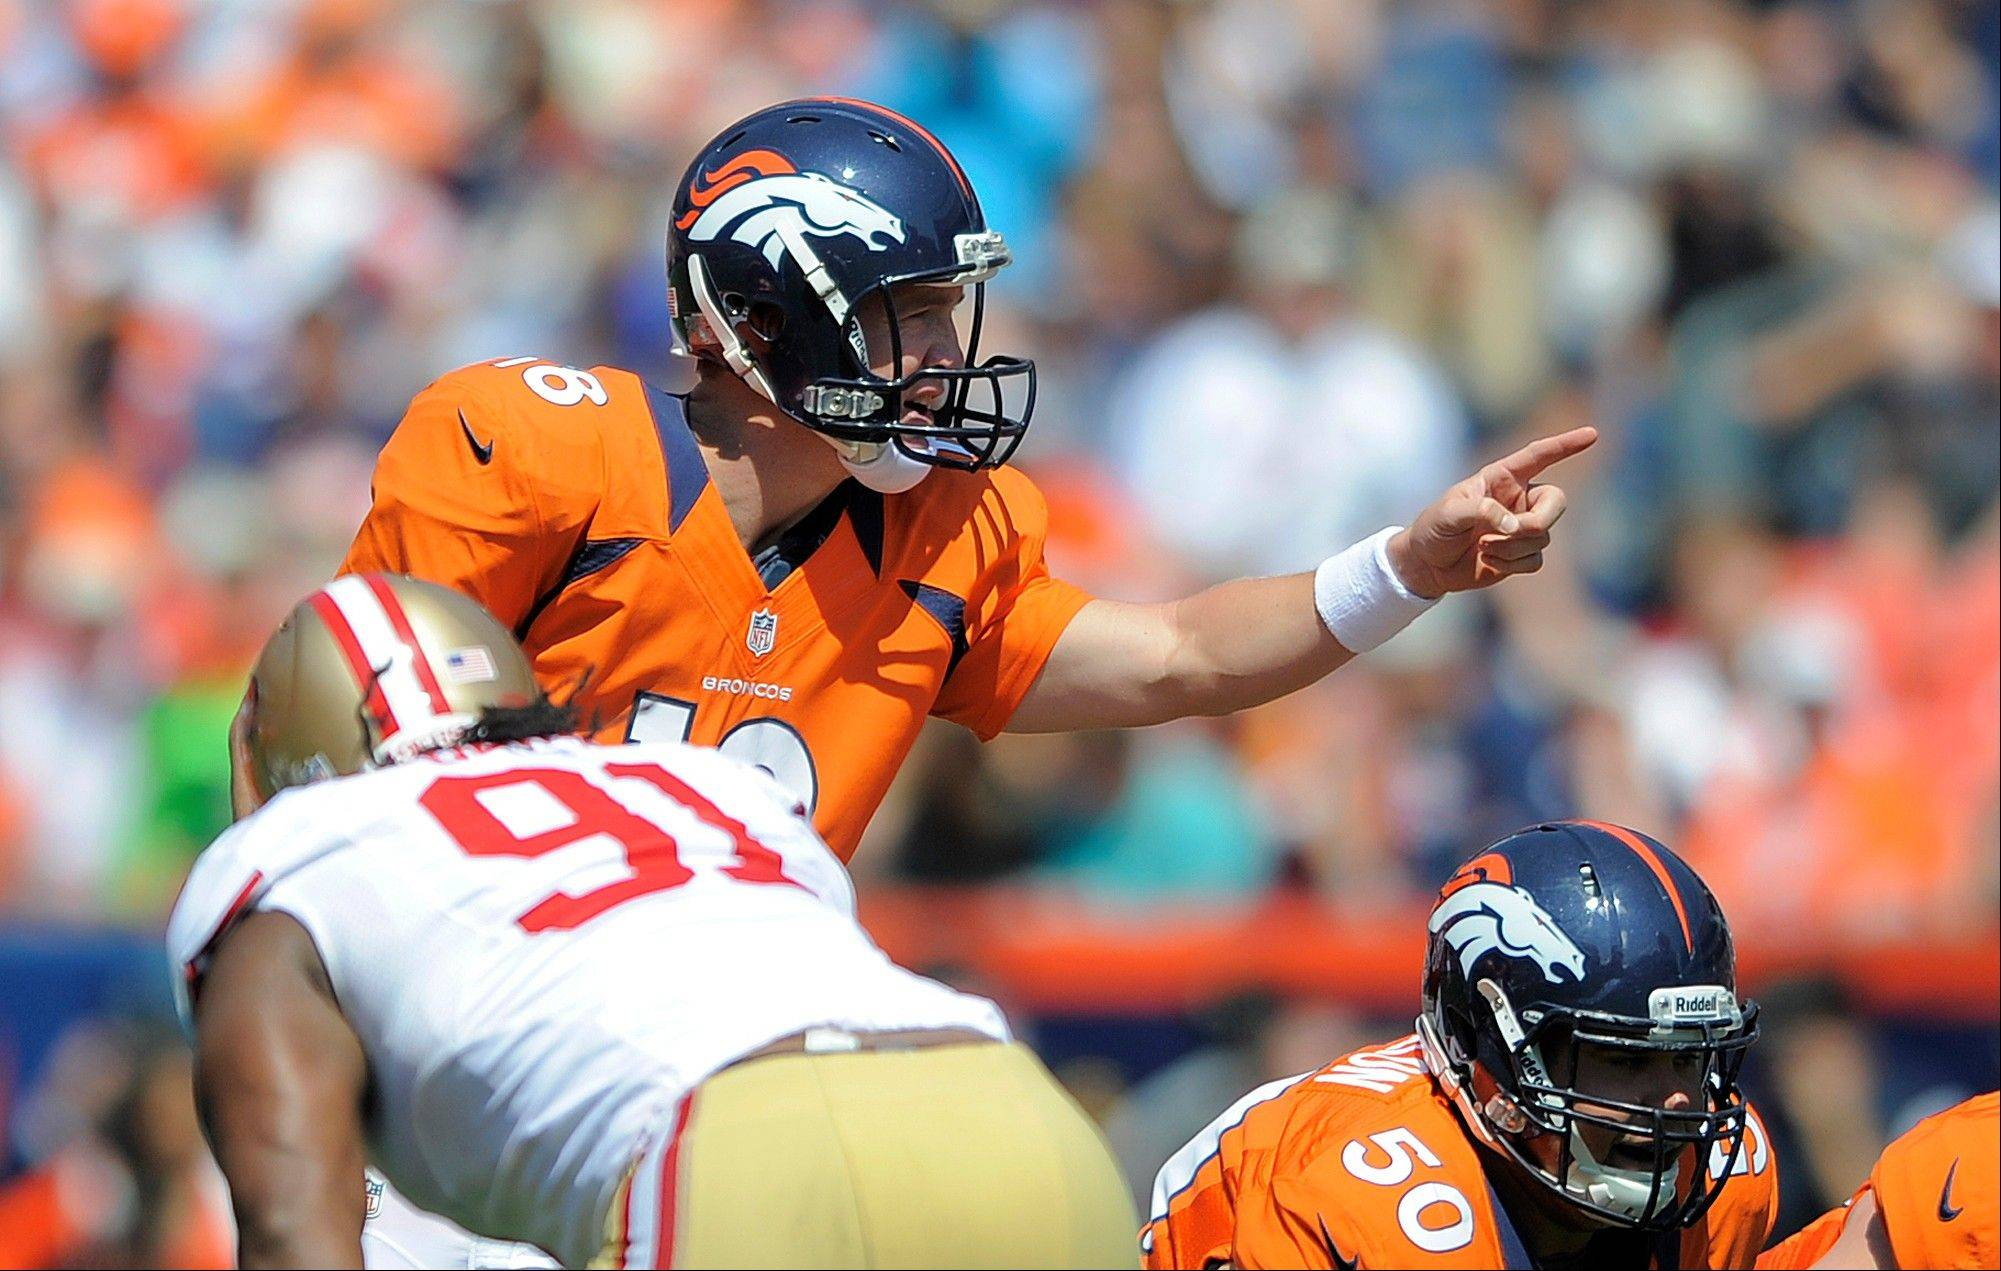 Denver Broncos quarterback Peyton Manning (18) calls a play at the line of scrimmage during the first quarter of an NFL preseason football game against the San Francisco 49ers in Denver, Sunday, Aug. 26, 2012.